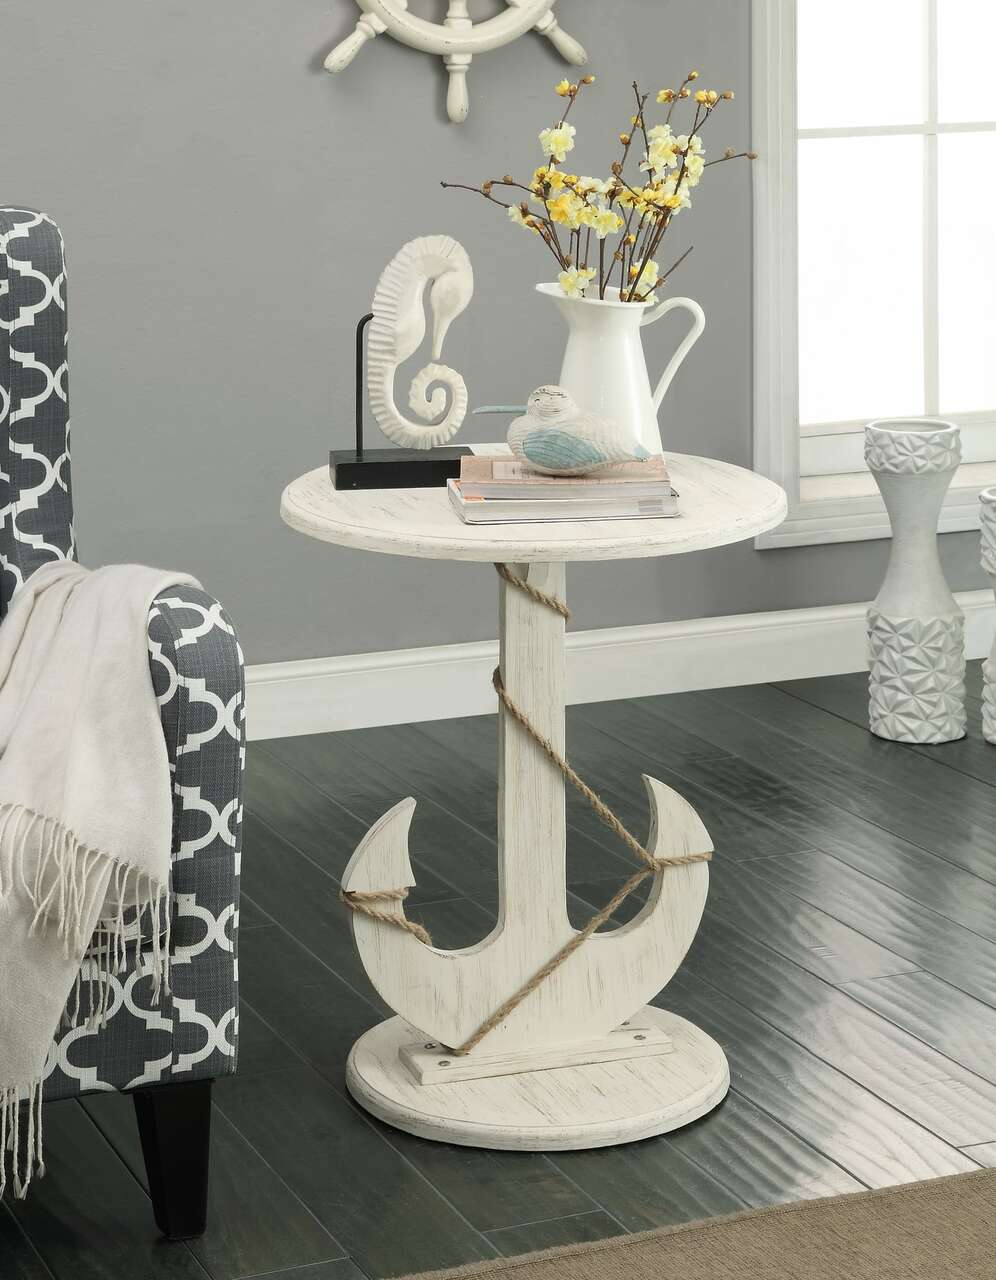 91749 Anchor Accent Table by Coast to Coast